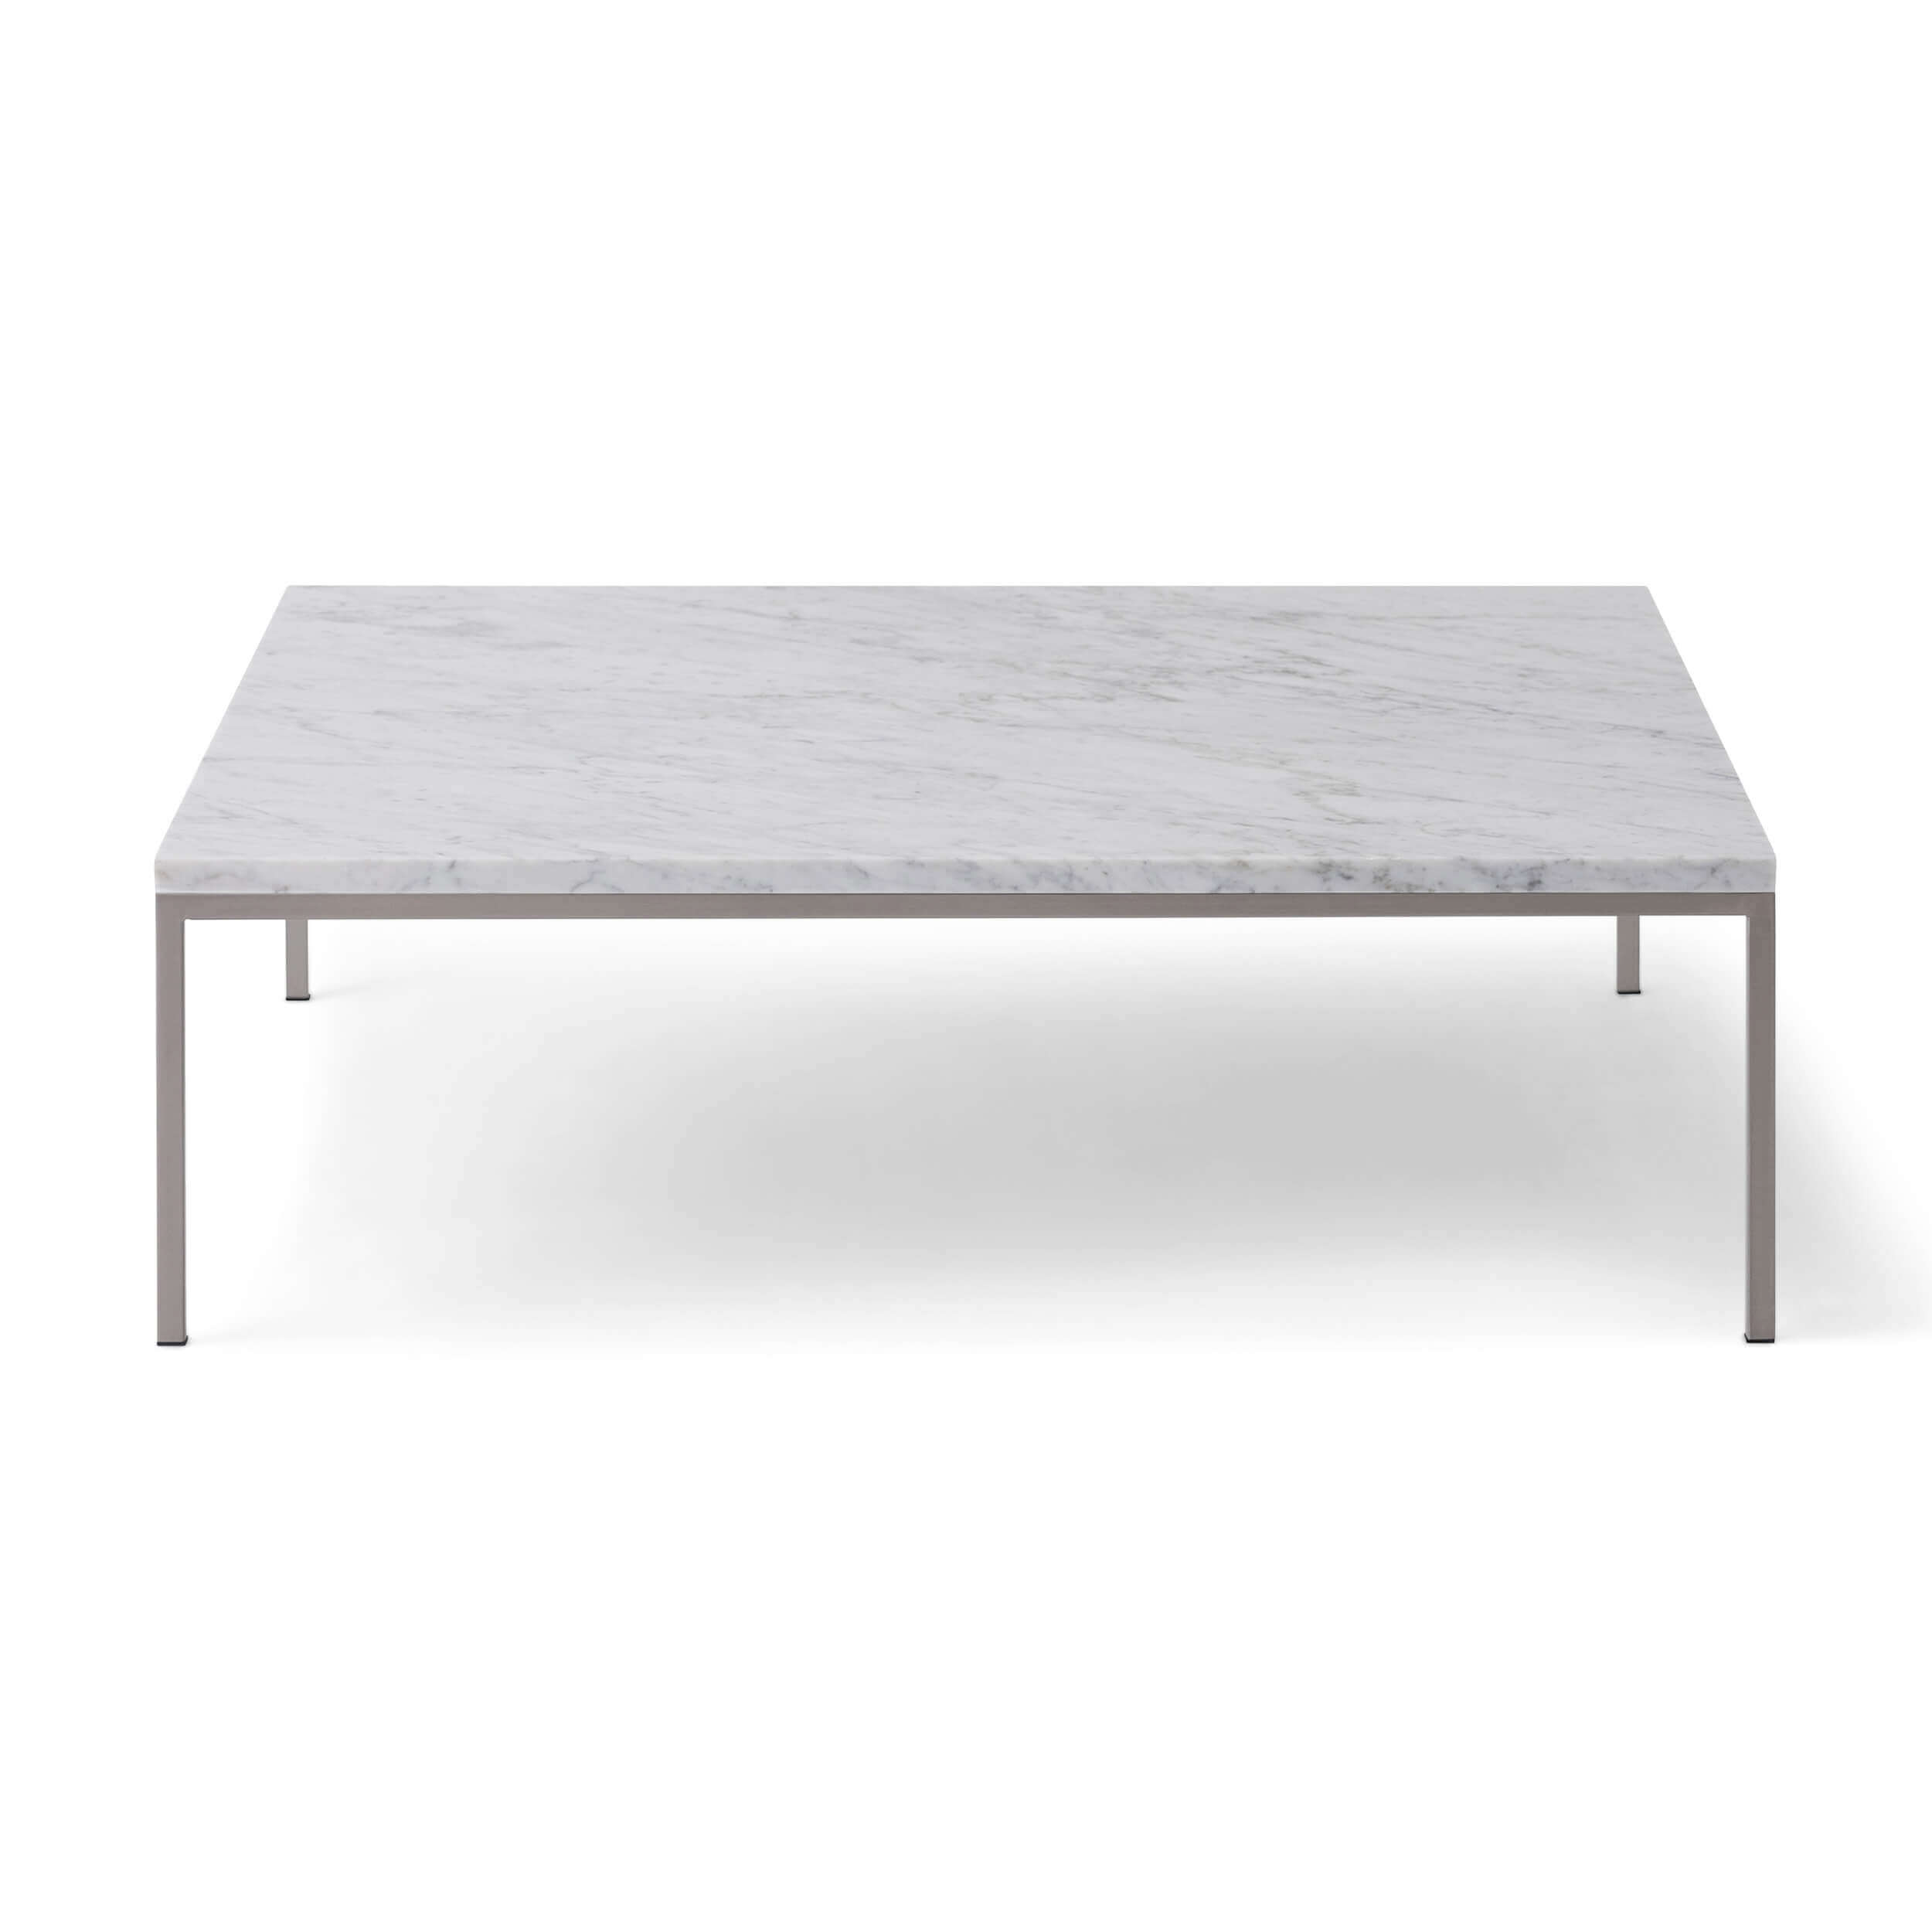 Eq3 S Custom Square Coffee Table Modern Accent Table